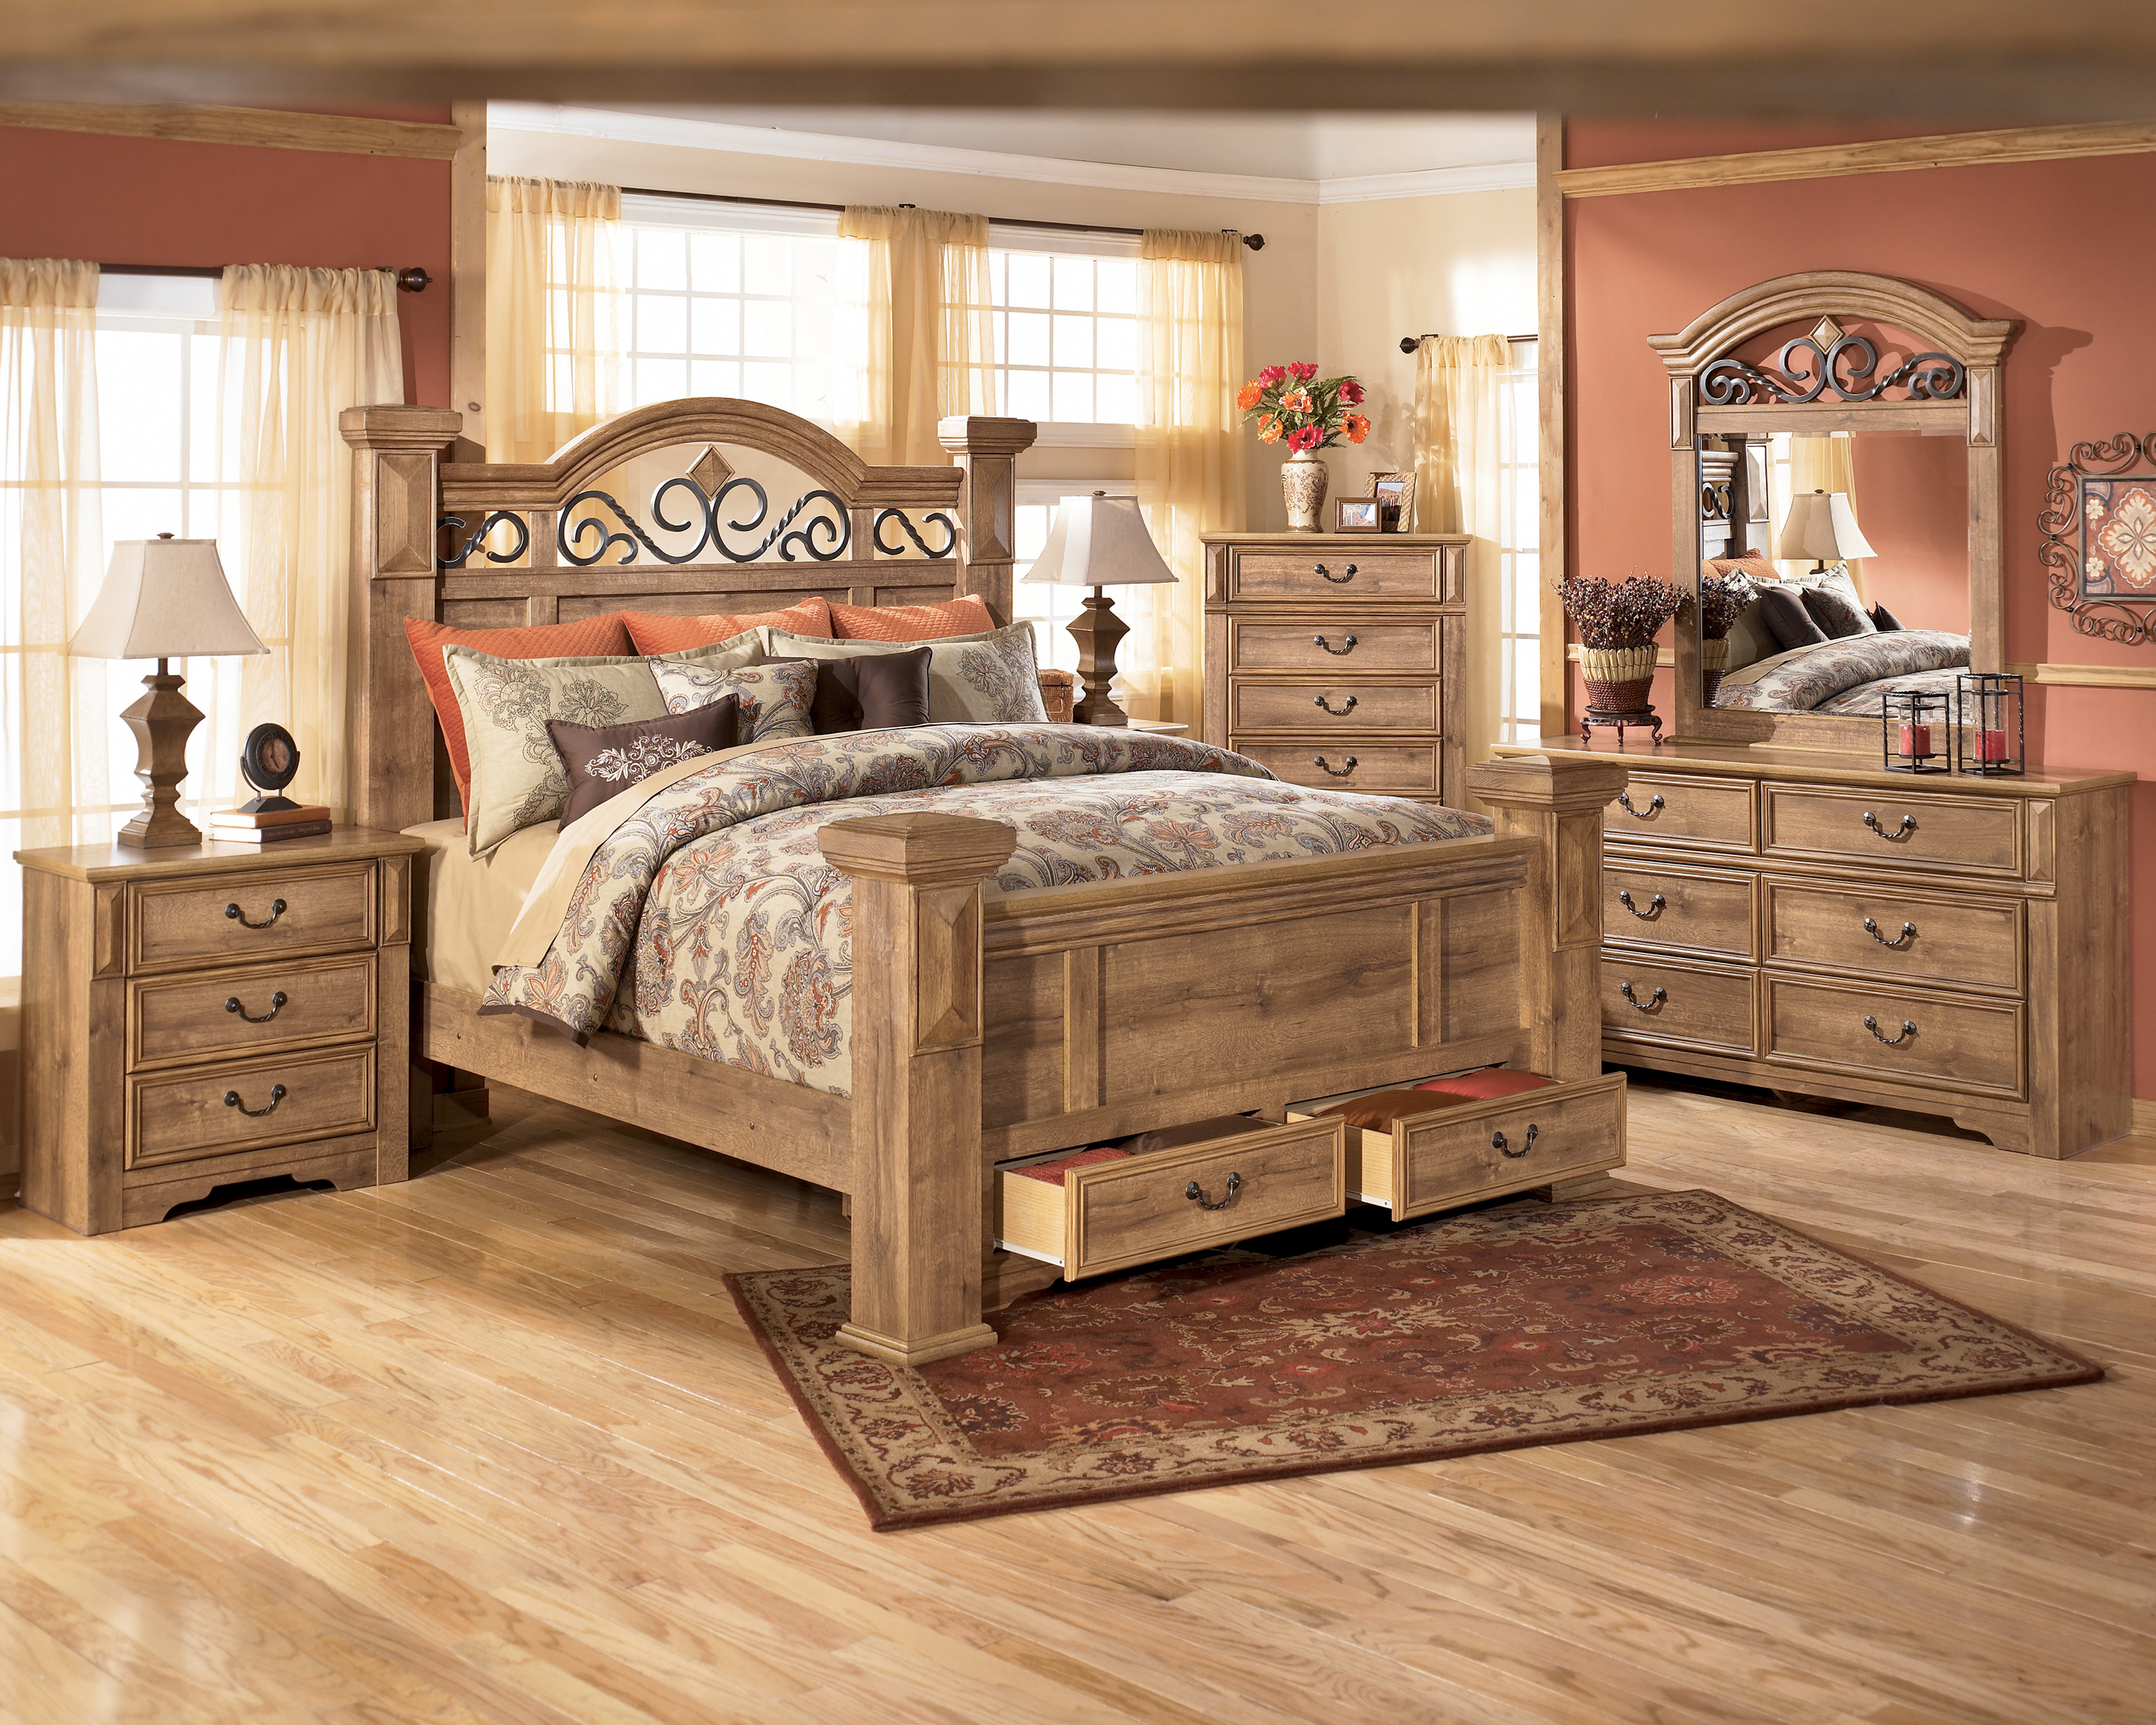 Bedroom Stylish Gorgeous Laminate Floor And Fancy Queen Beds